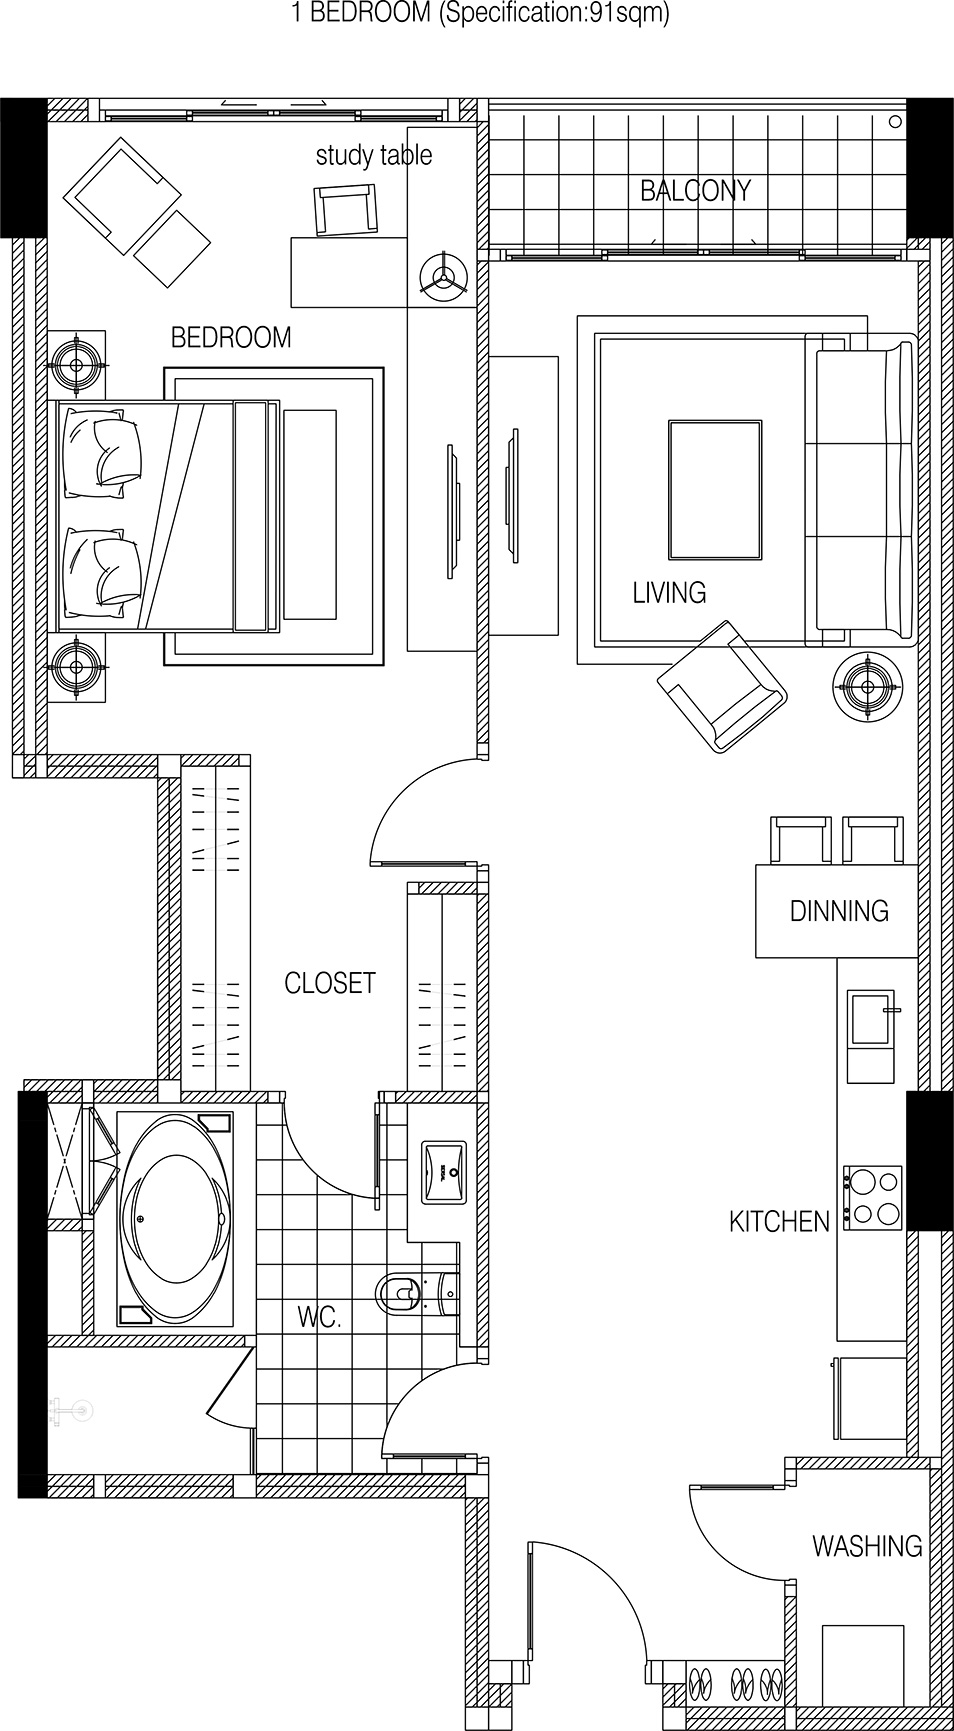 Floor-3-10-revise-for-kitchenu3-r-Model